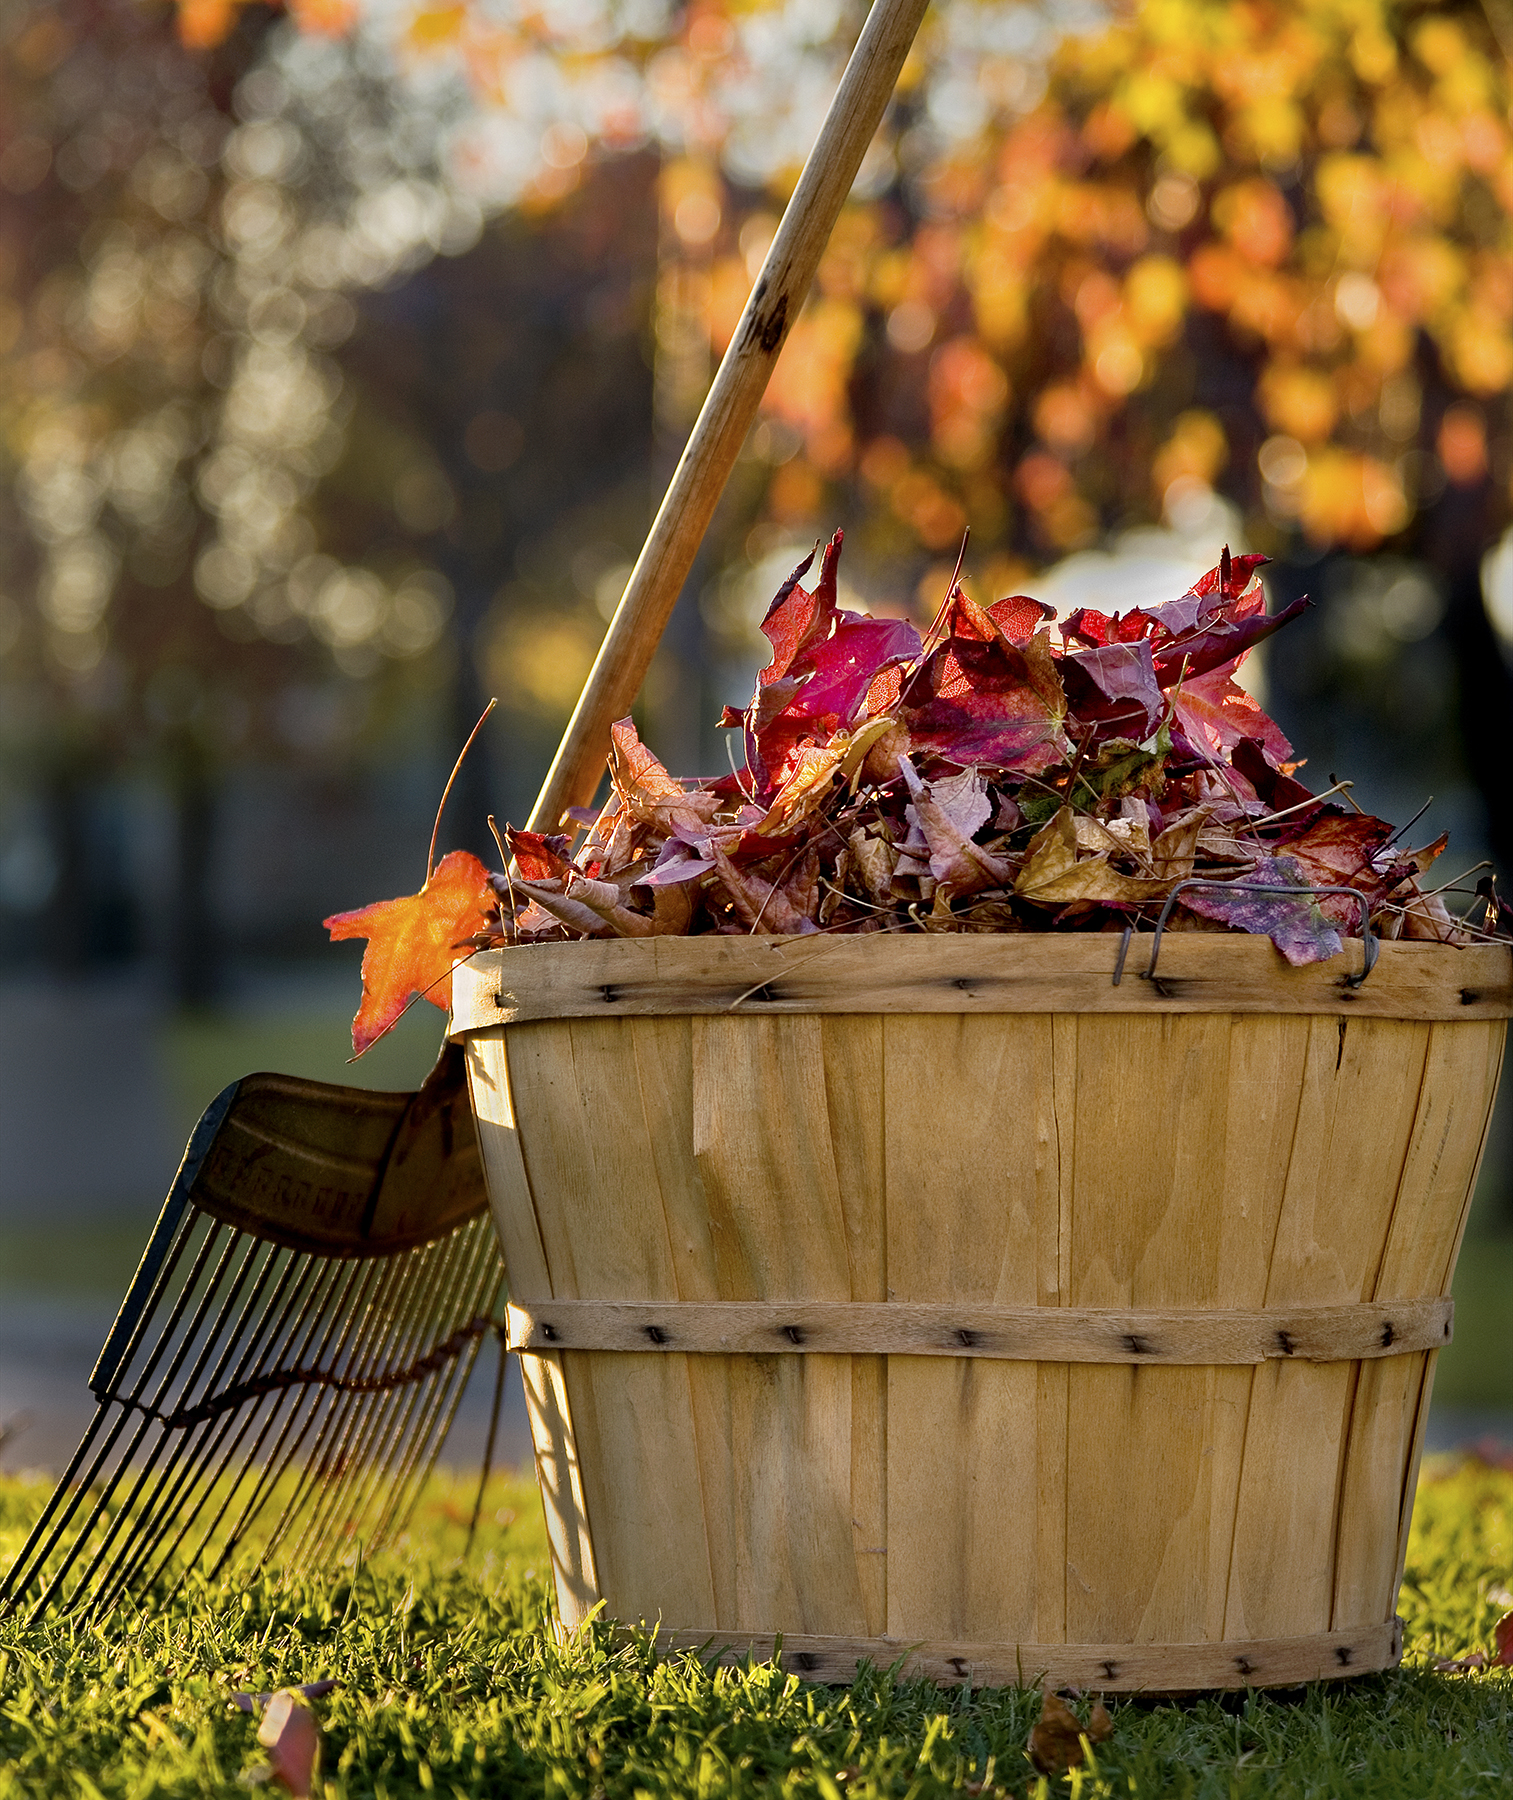 Raked leaves in a wood bucket